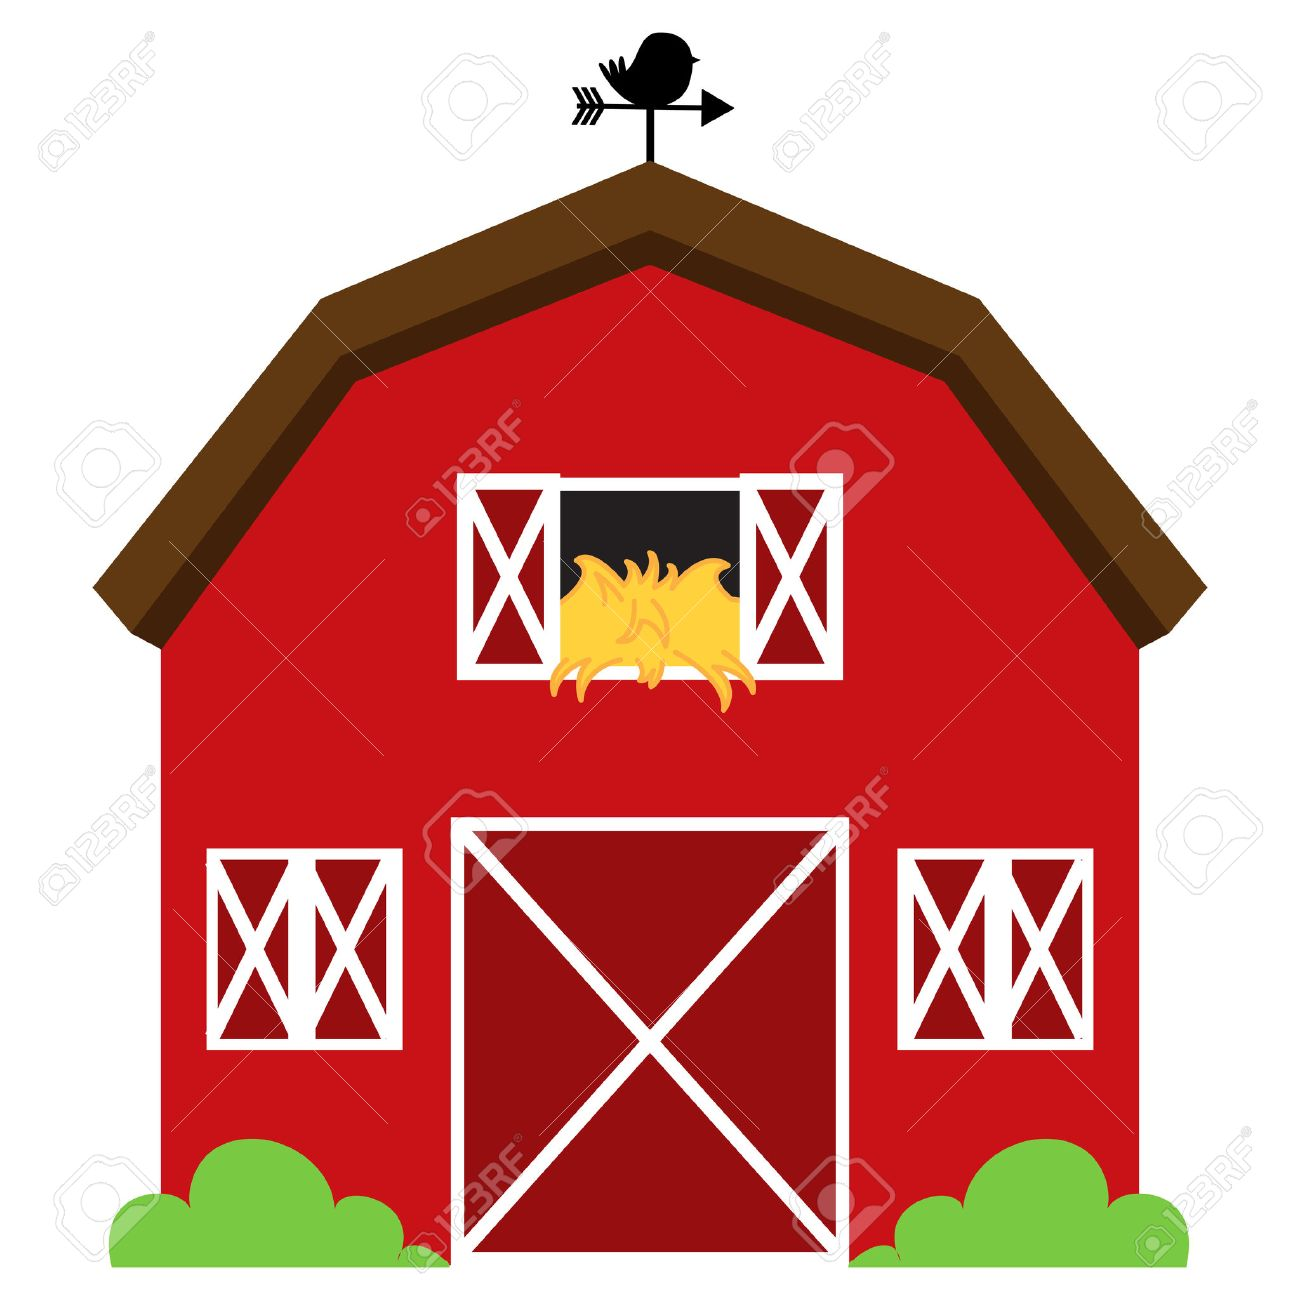 red barn clipart at getdrawings com free for personal use red barn rh getdrawings com barn clipart images barn clip art black and white